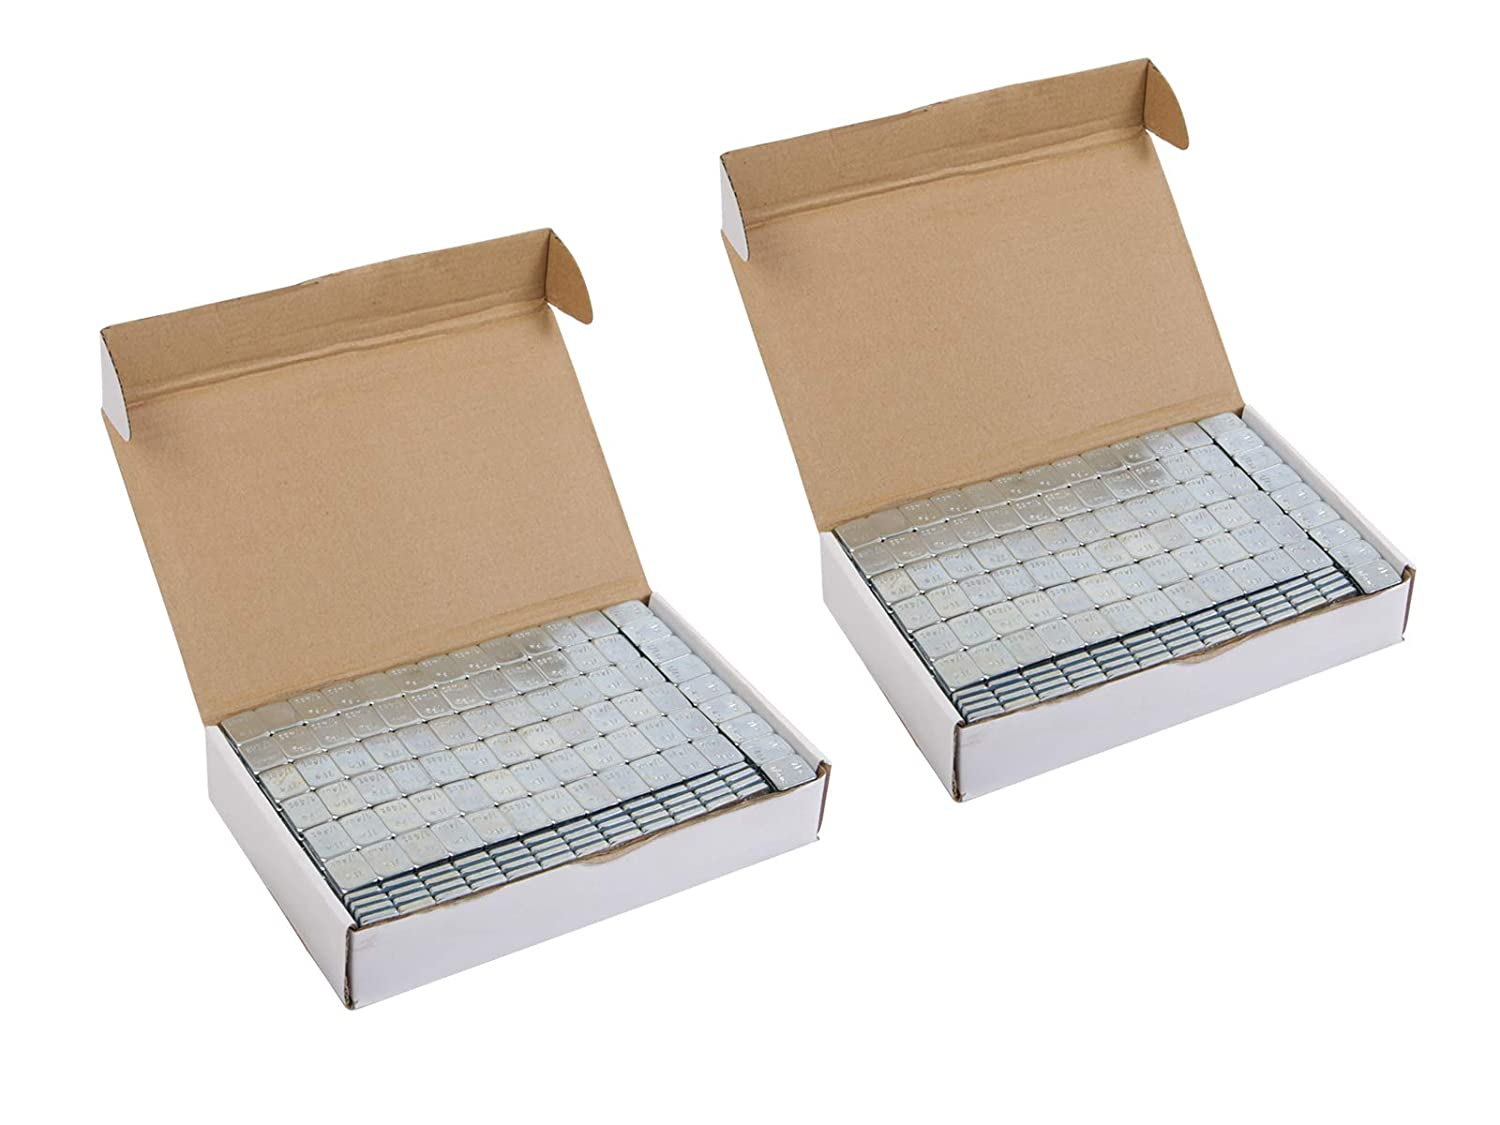 (2) Boxes of 1/4 ounce (0.25oz) Silver, Adhesive, Stick On Wheel Weights (Low Profile) - Zinc Plated (Lead Free) - 408oz (~26 lbs) total, 136 total 3-oz strips, 1632 total pieces Precision European Motorwerks